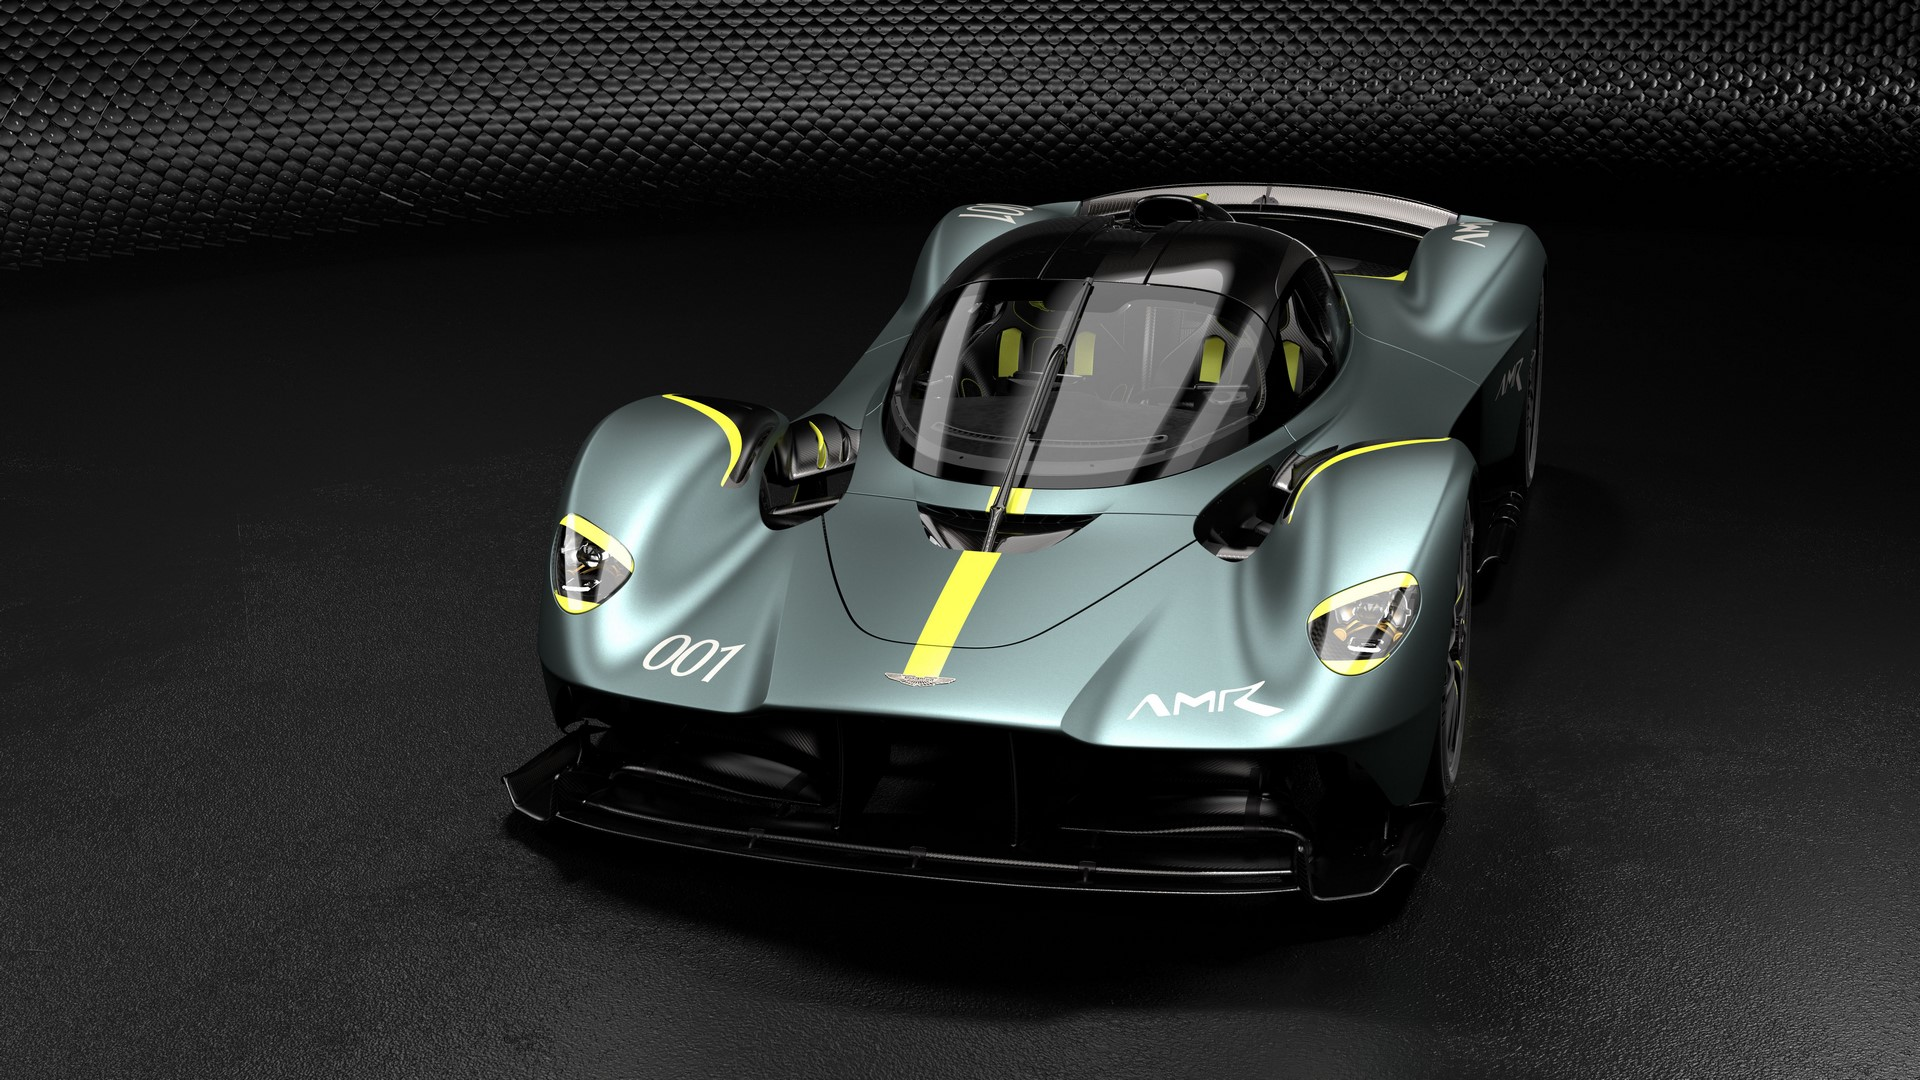 Aston Martin Valkyrie with AMR Track Performance Pack - Stirling Green and Lime livery (1)